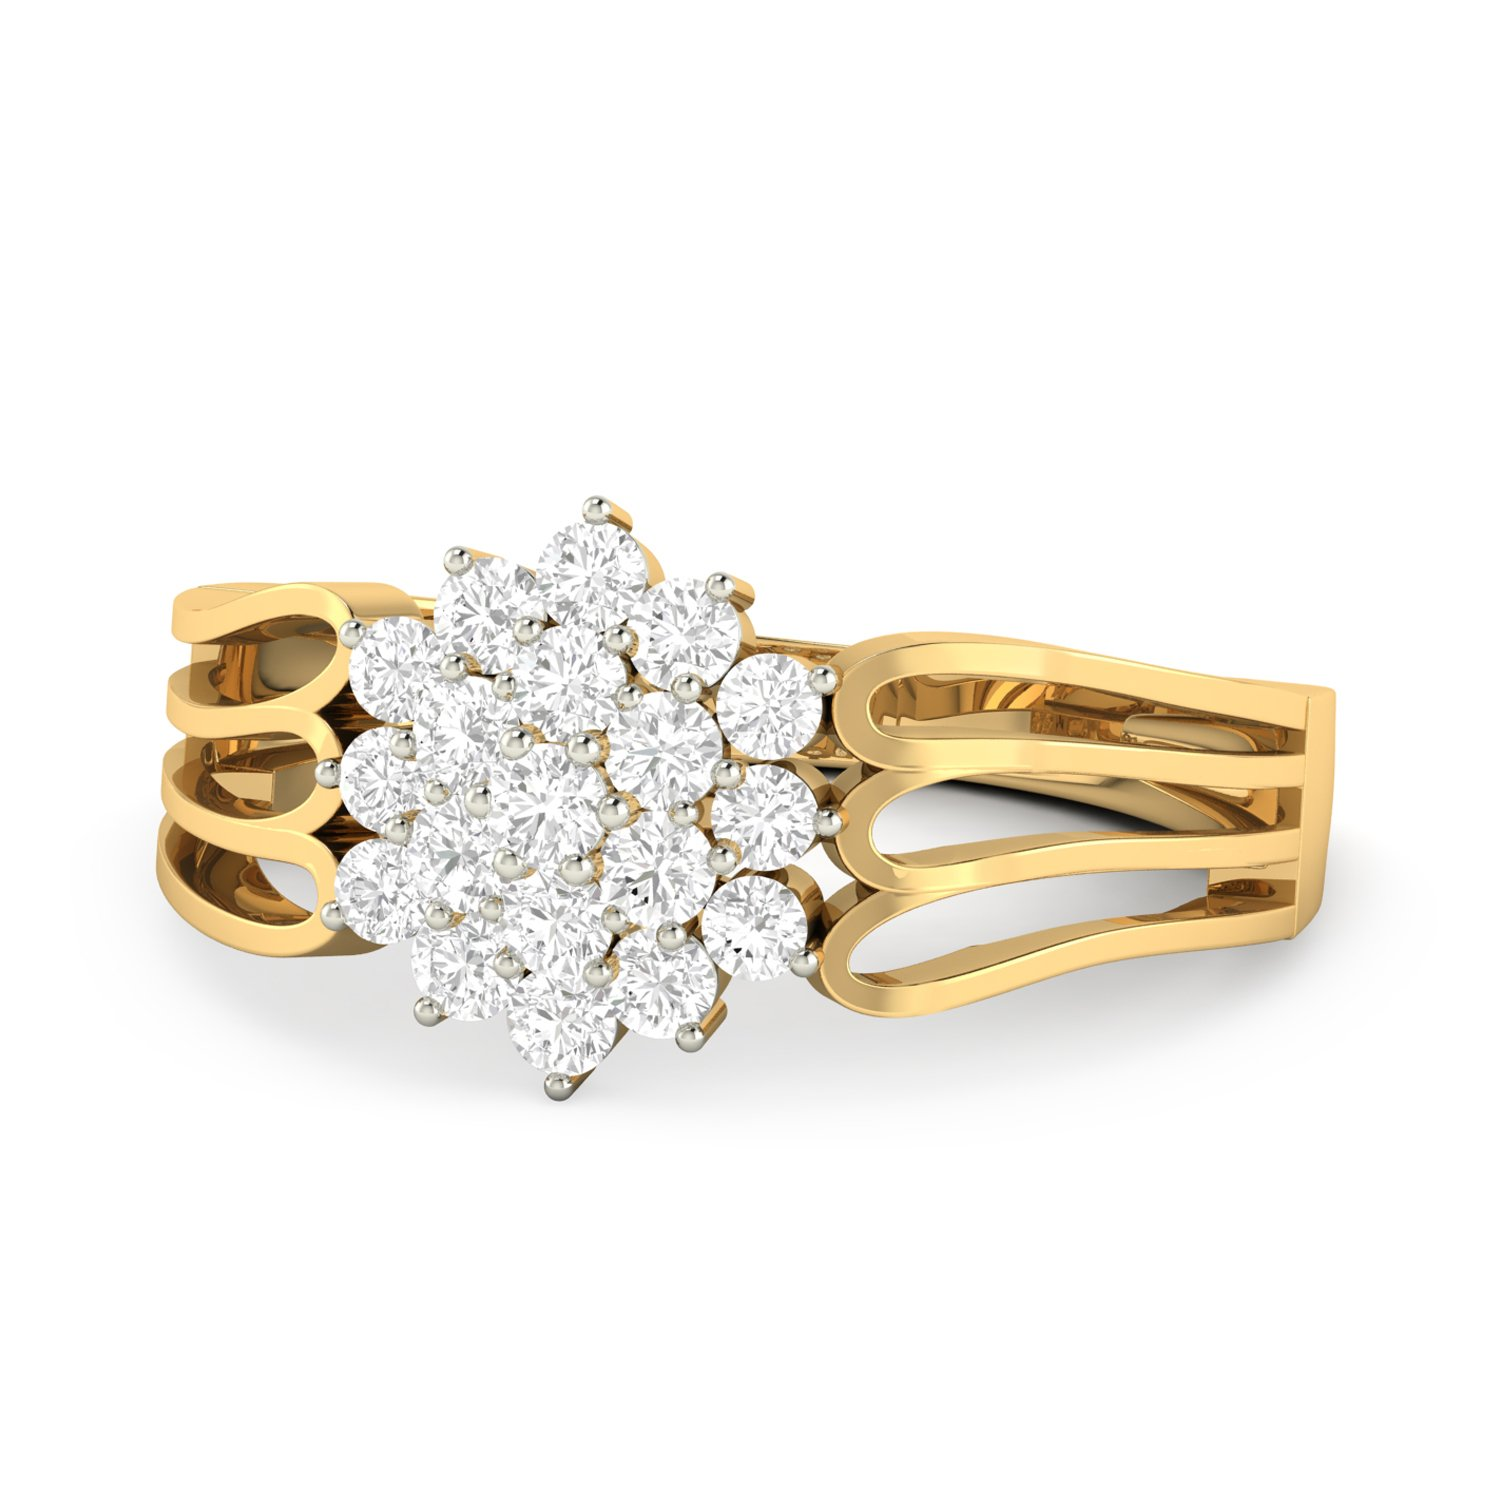 3ac0b25c6 Buy PC Jeweller The Tevy 18KT Yellow Gold & Diamond Rings Online at Low  Prices in India | Amazon Jewellery Store - Amazon.in